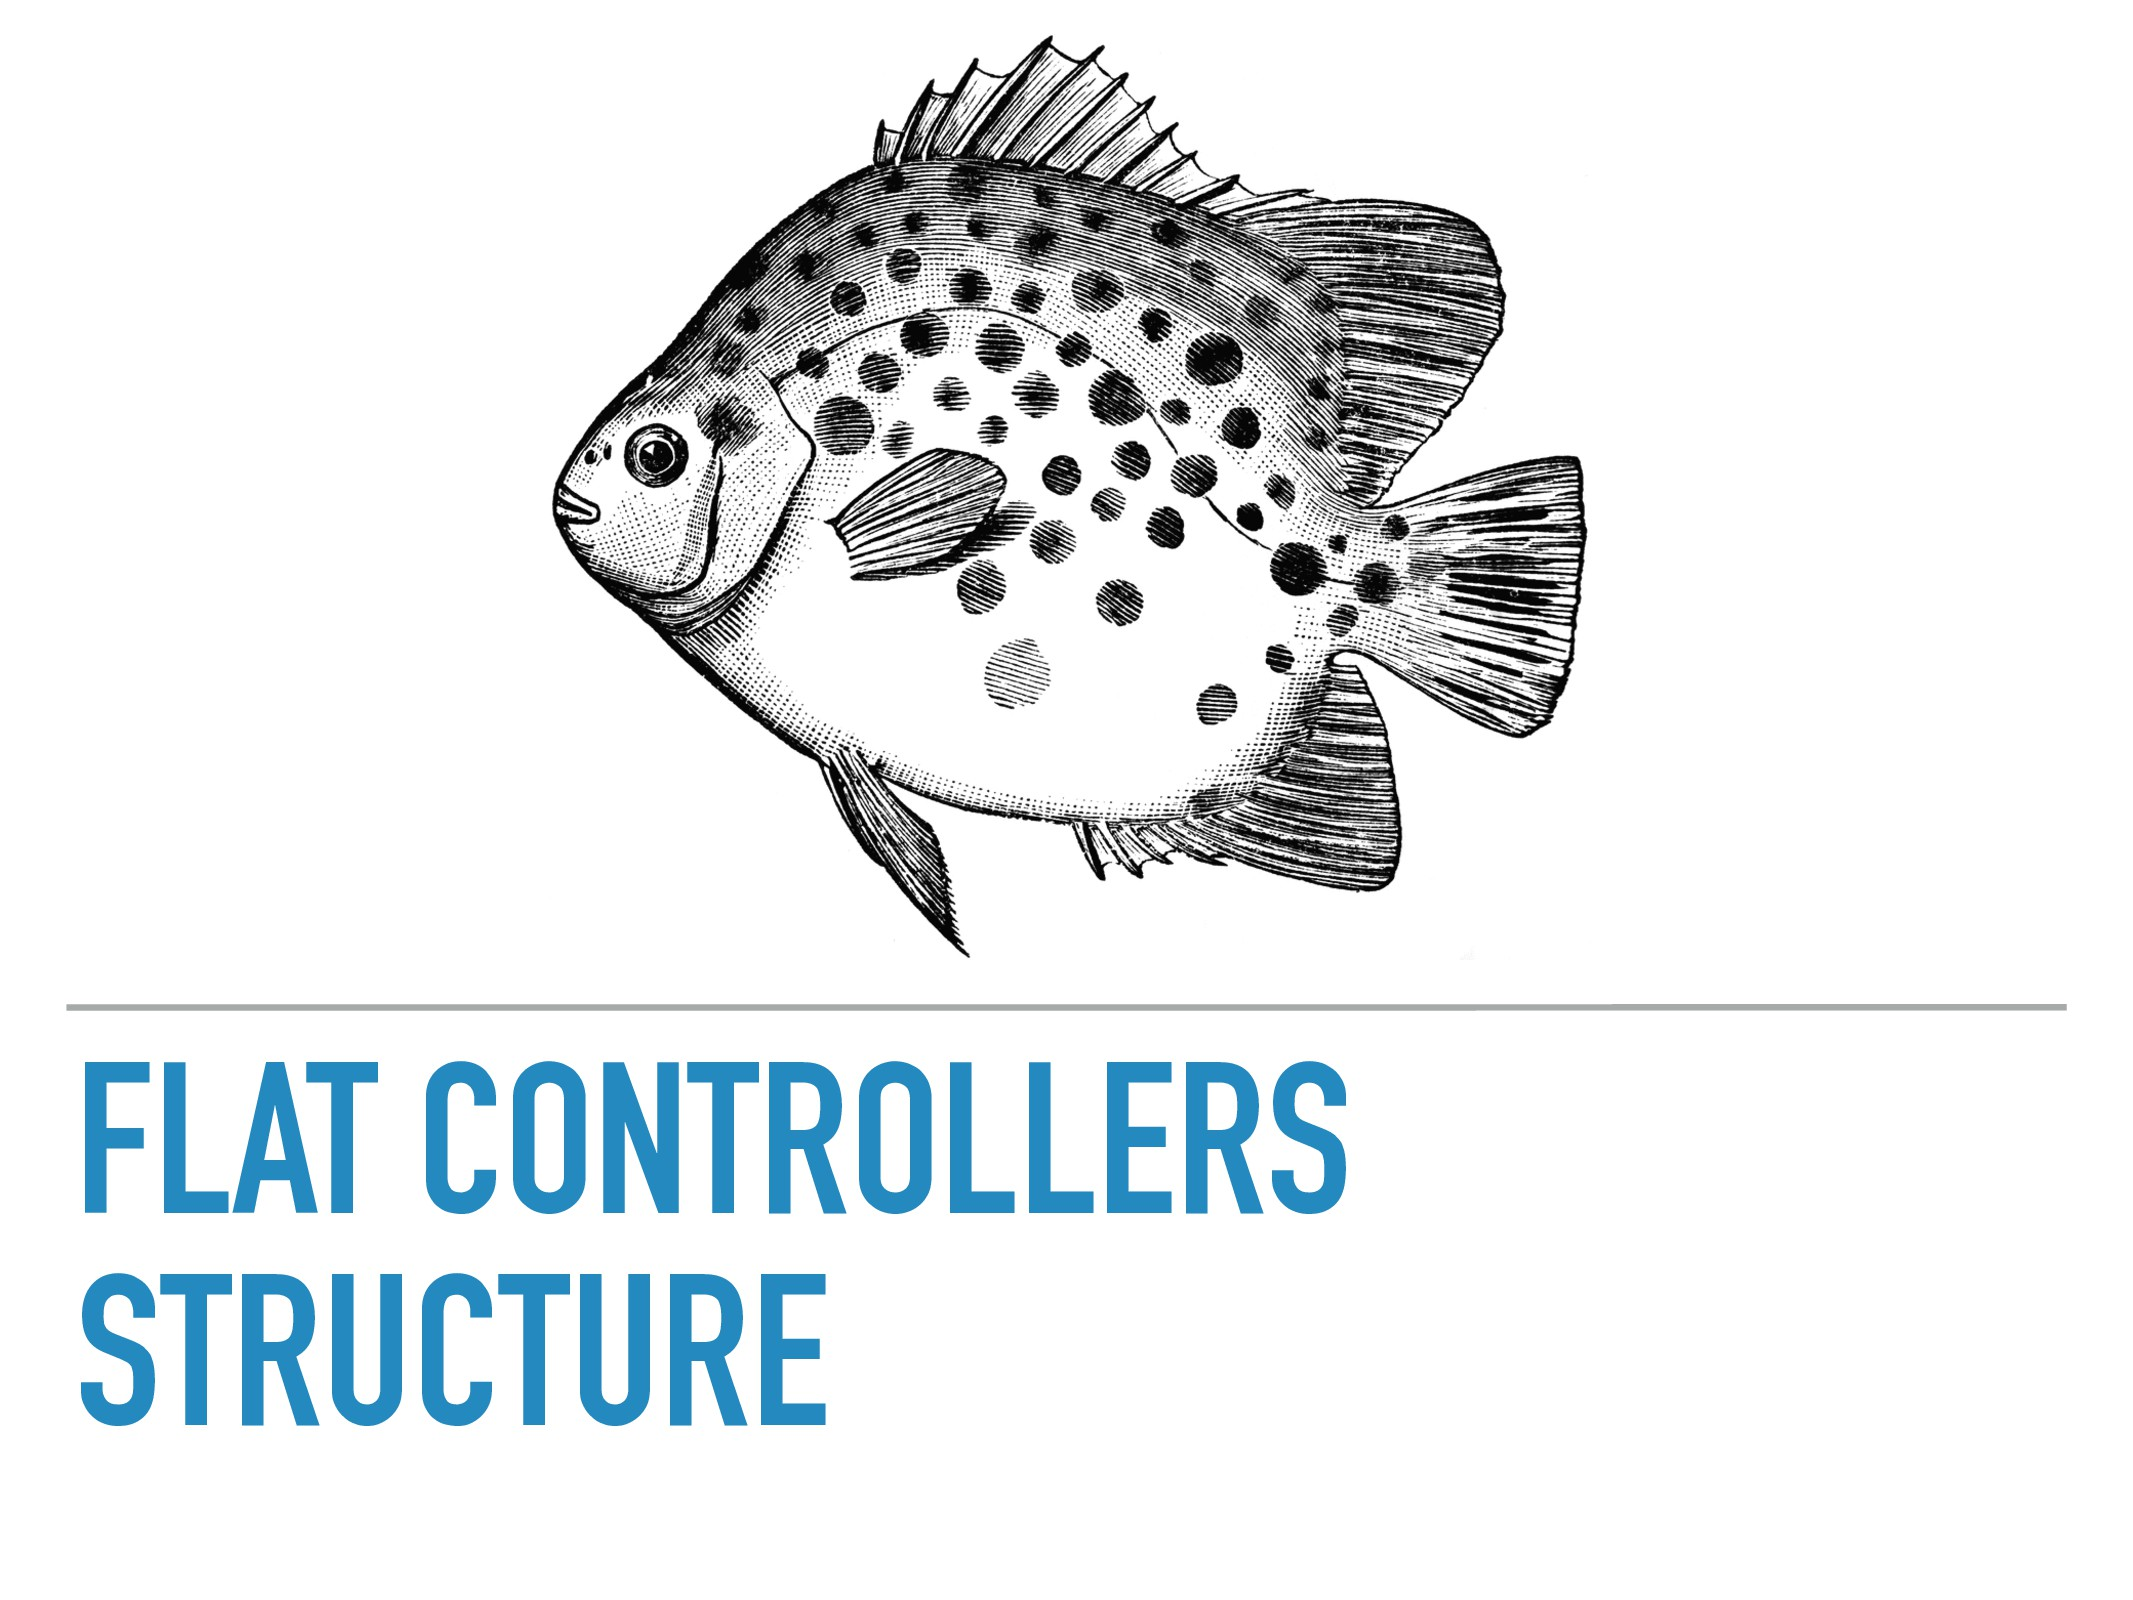 FLAT CONTROLLERS STRUCTURE